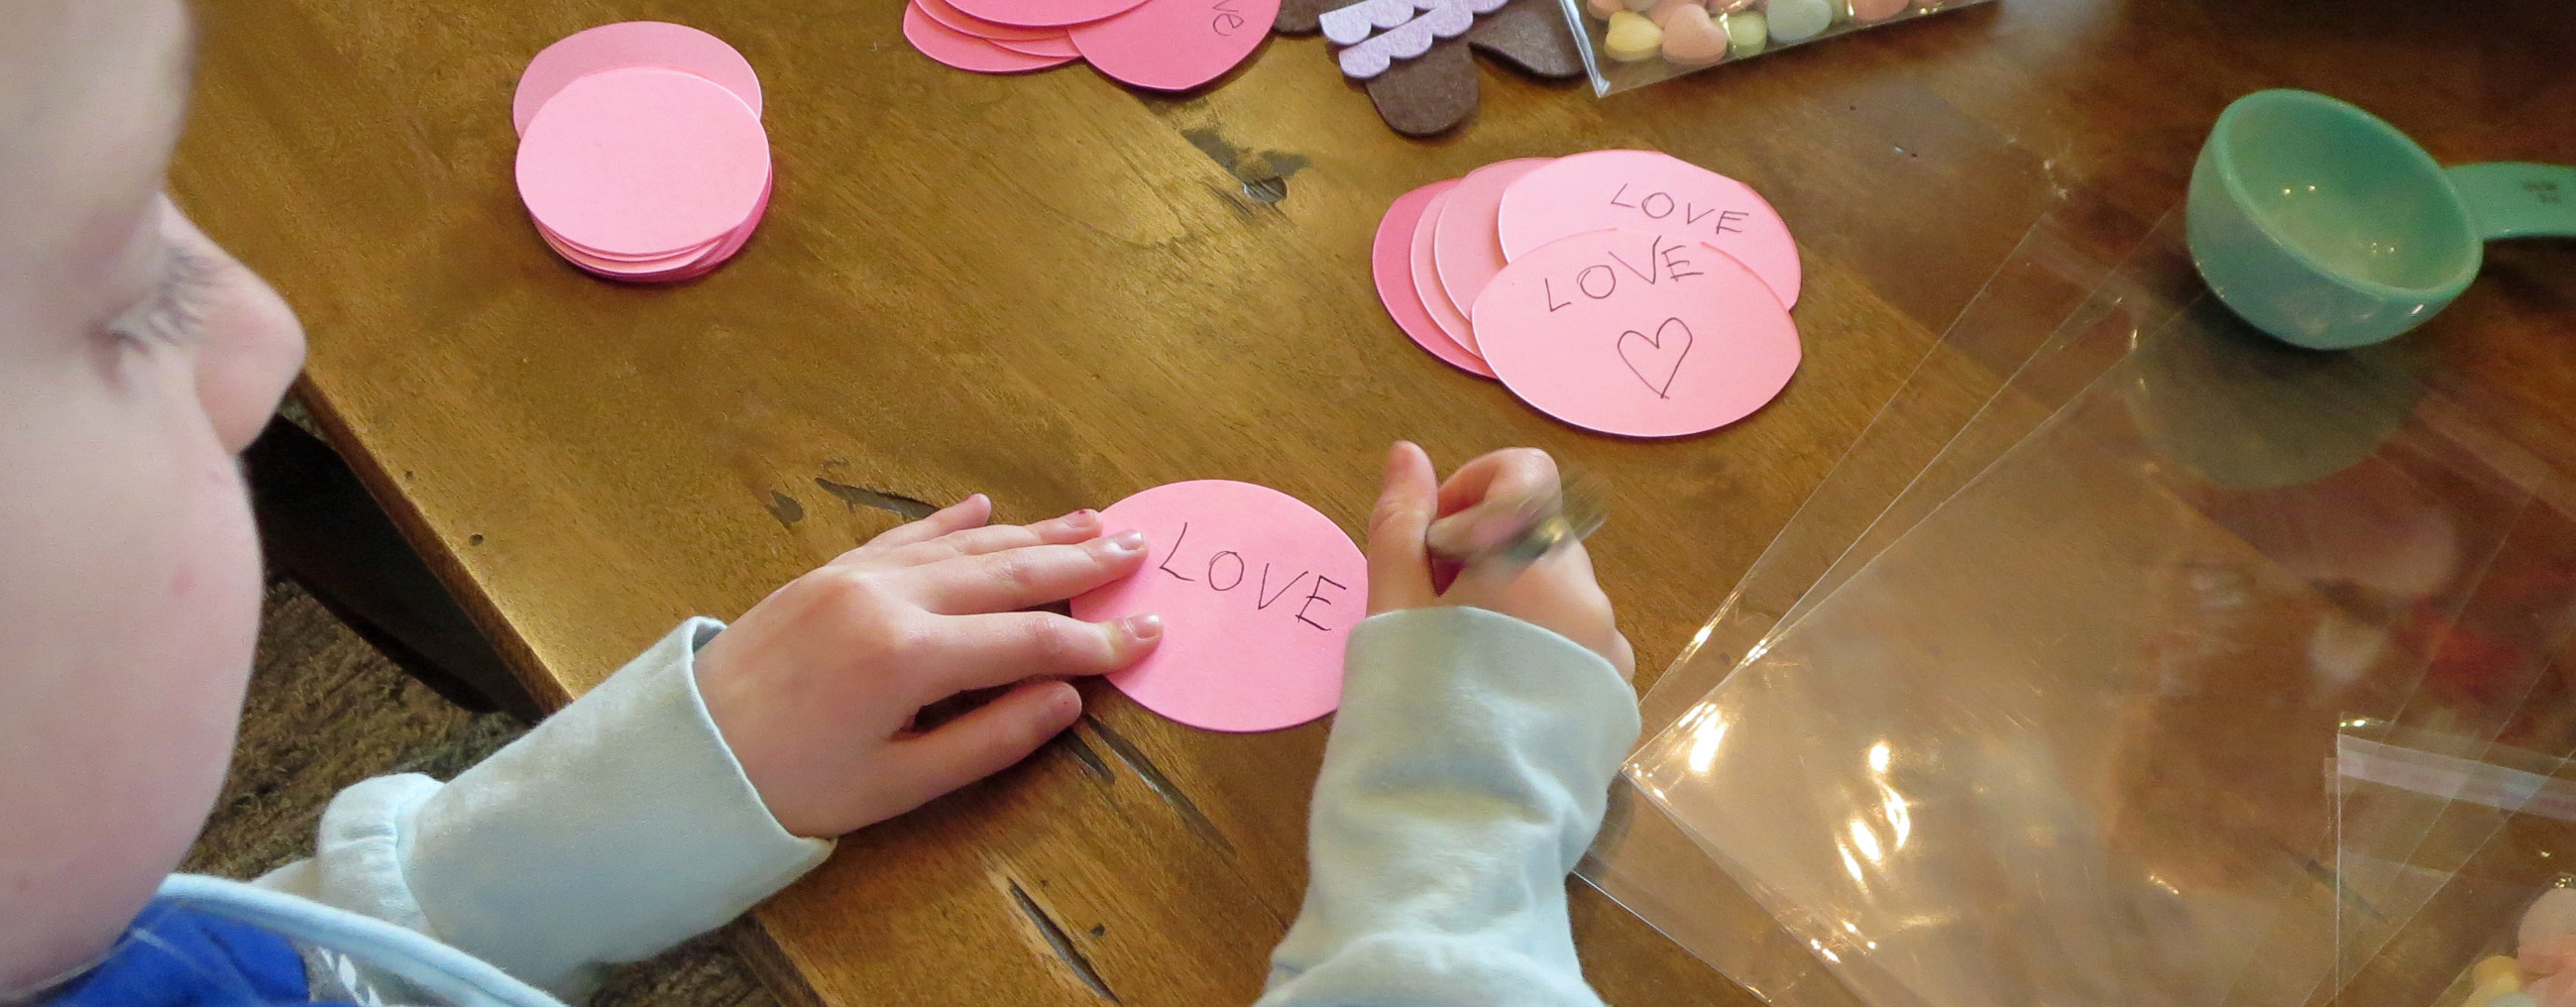 child writing the word love with a pen on pink paper oval on brown wooden table